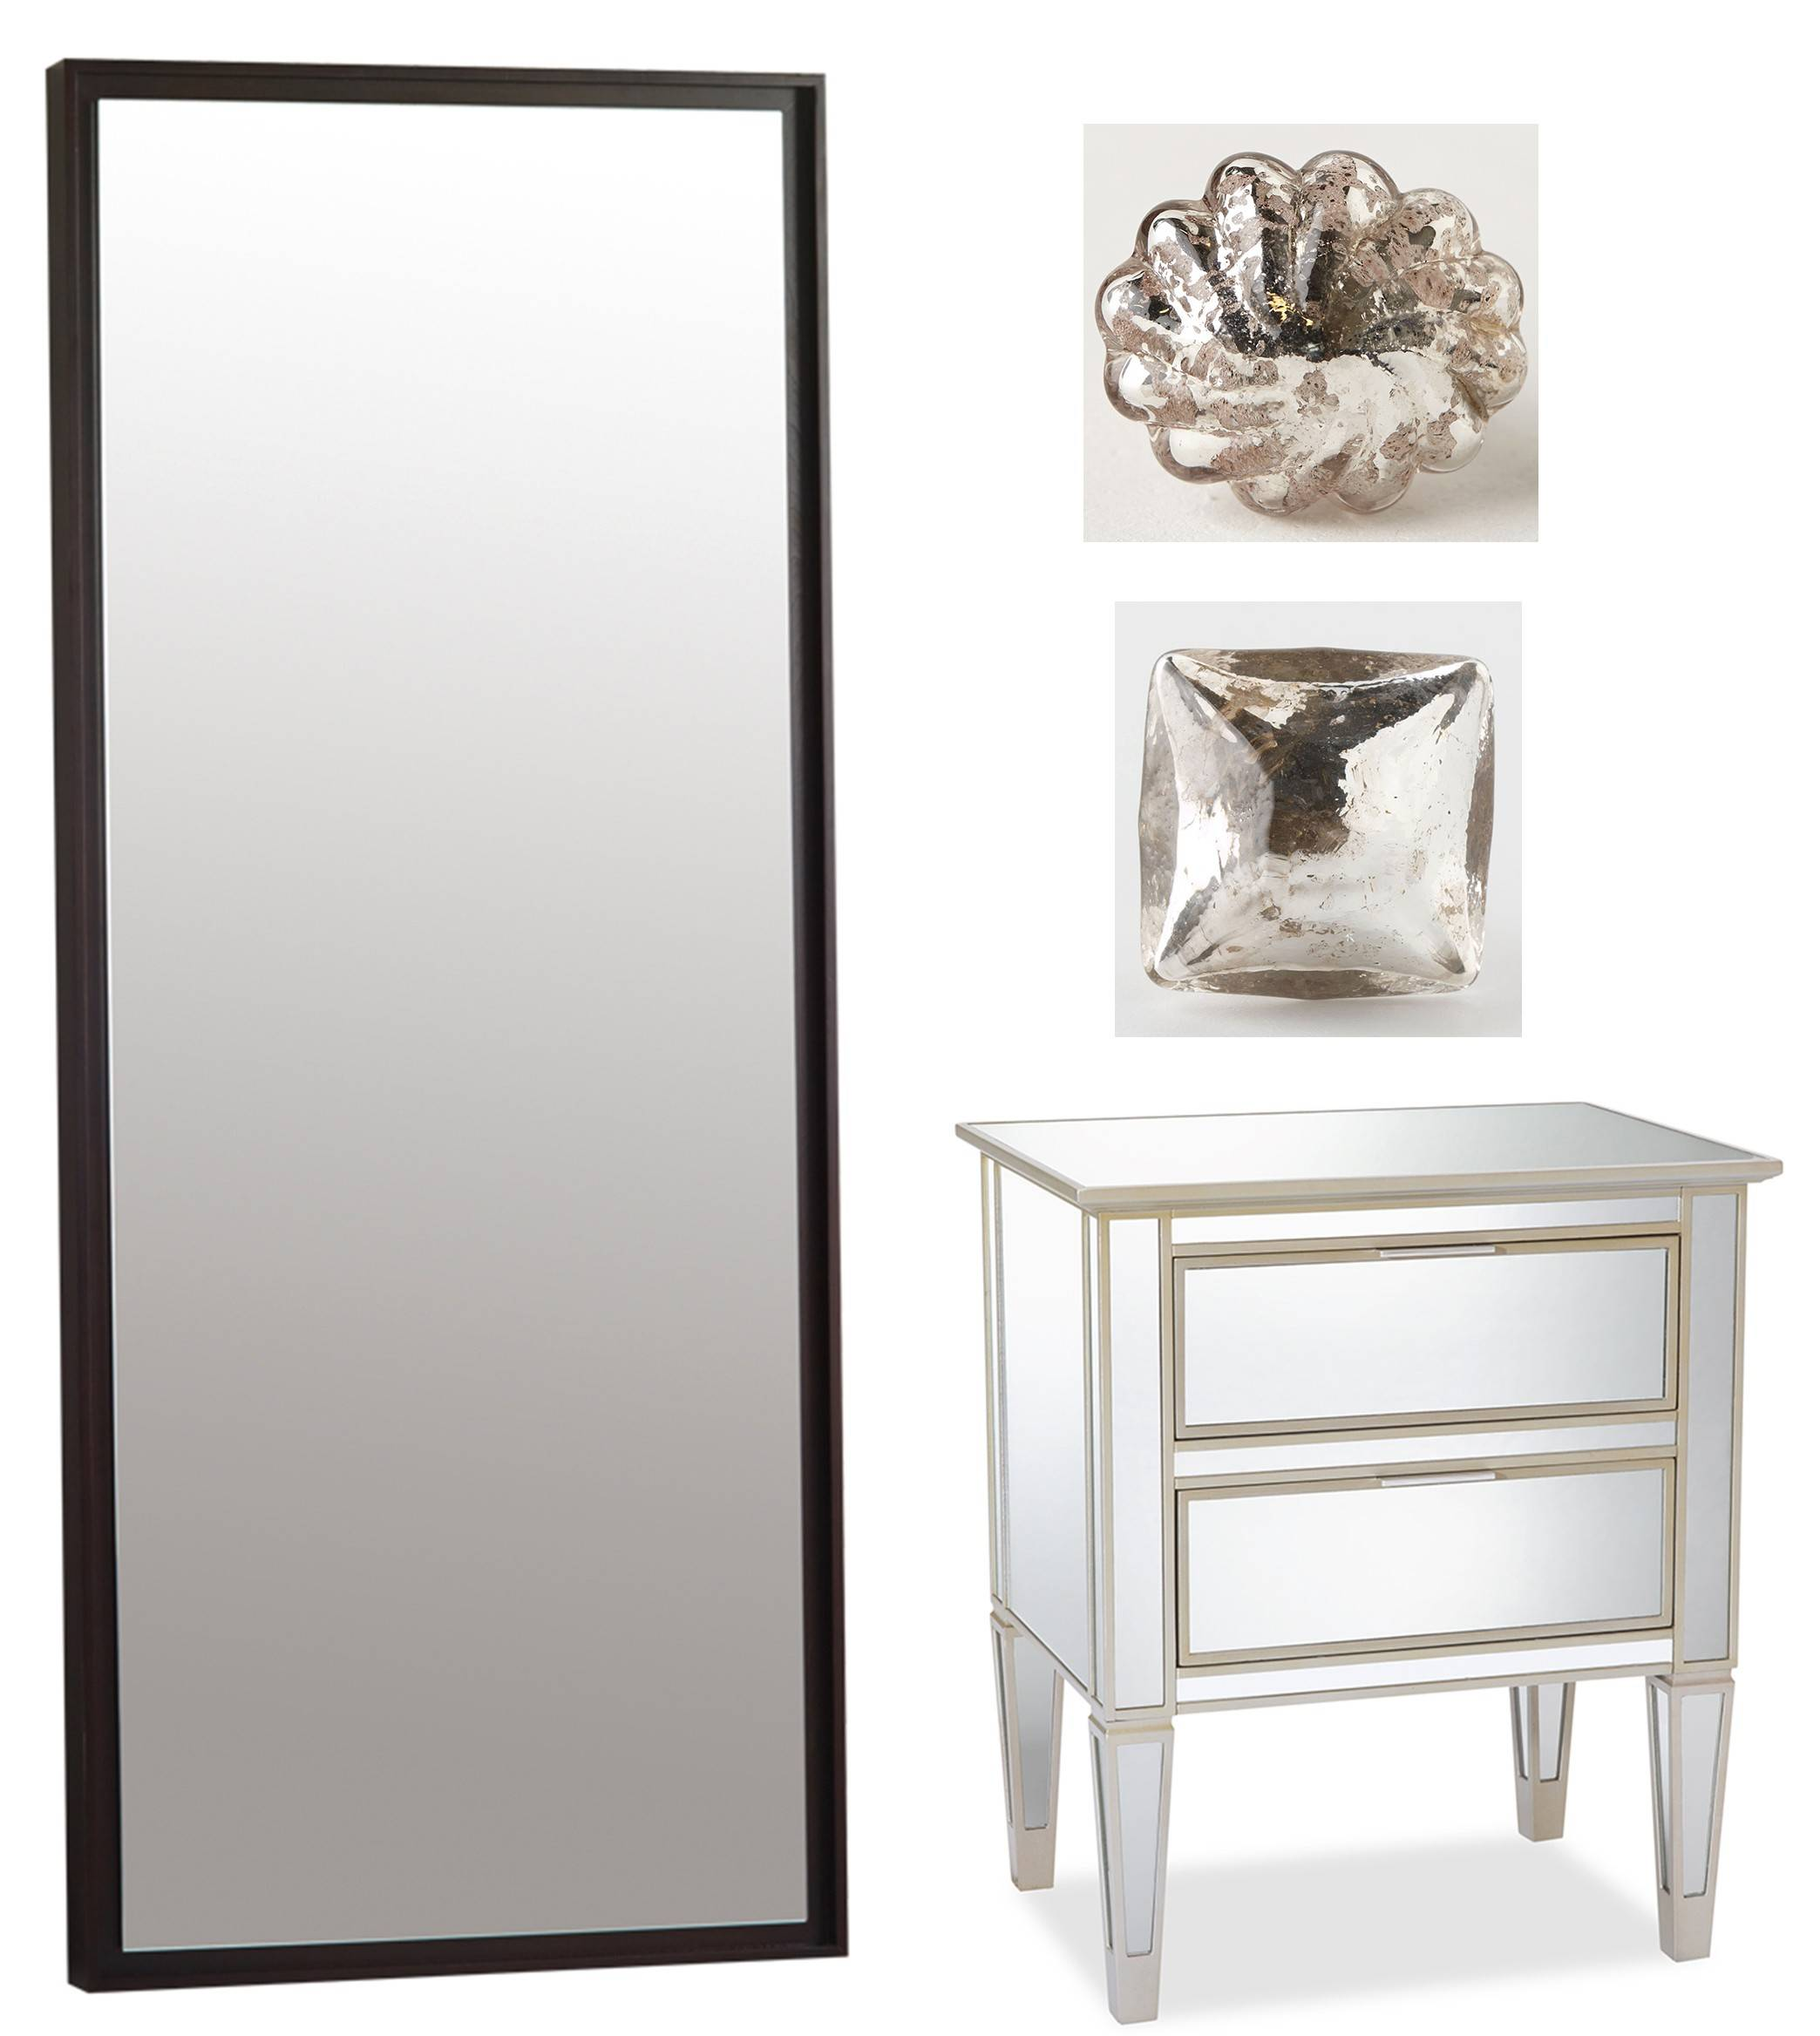 Mirrors Used Properly Can Make A Small Living Space Live Large. Shown Are,  Clockwise